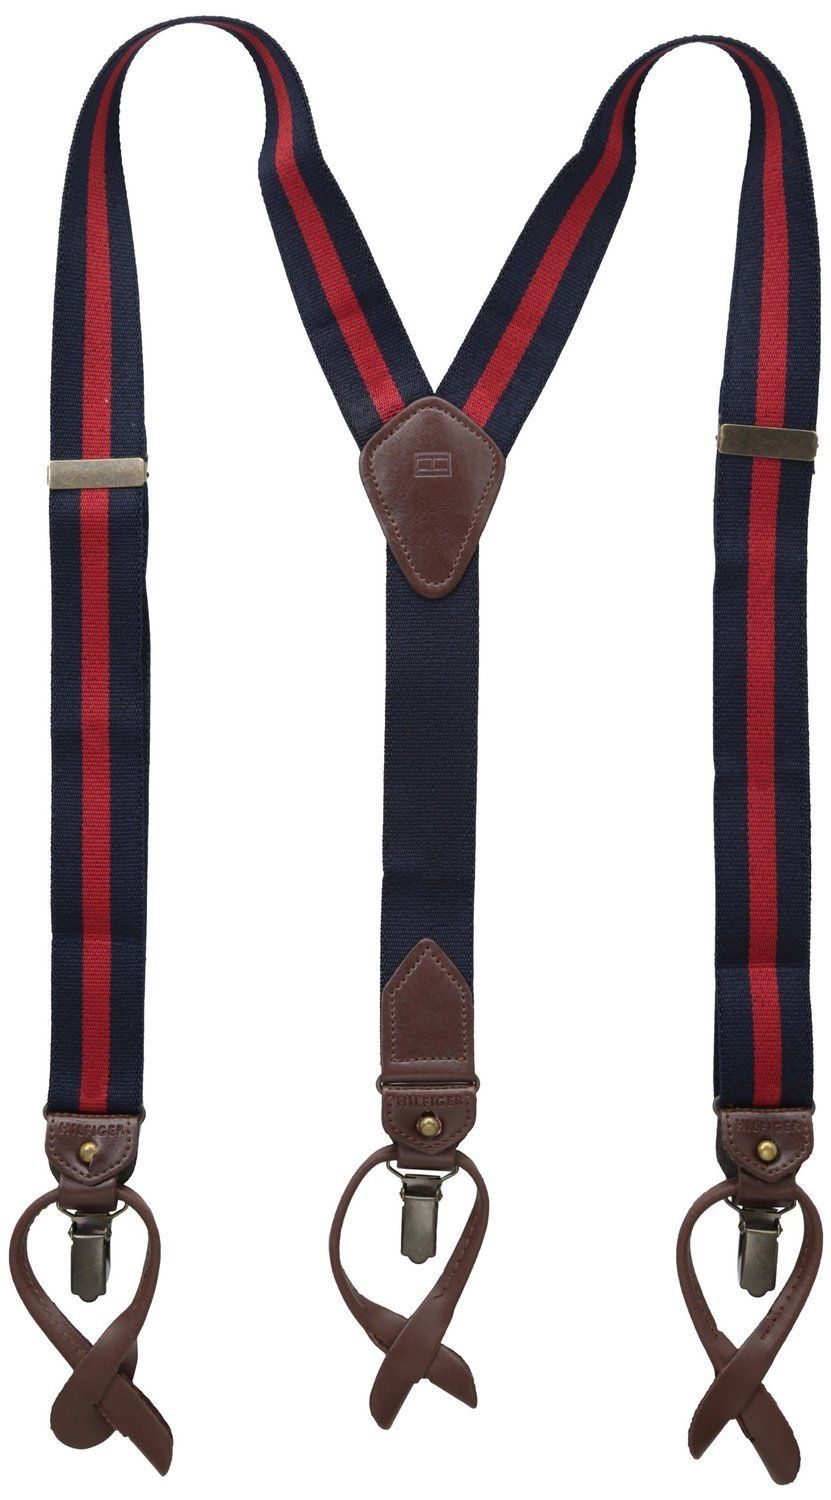 NEW TOMMY HILFIGER MEN'S CLASSIC VINTAGE LOOK SUSPENDERS NAVY RED 21TL61x005